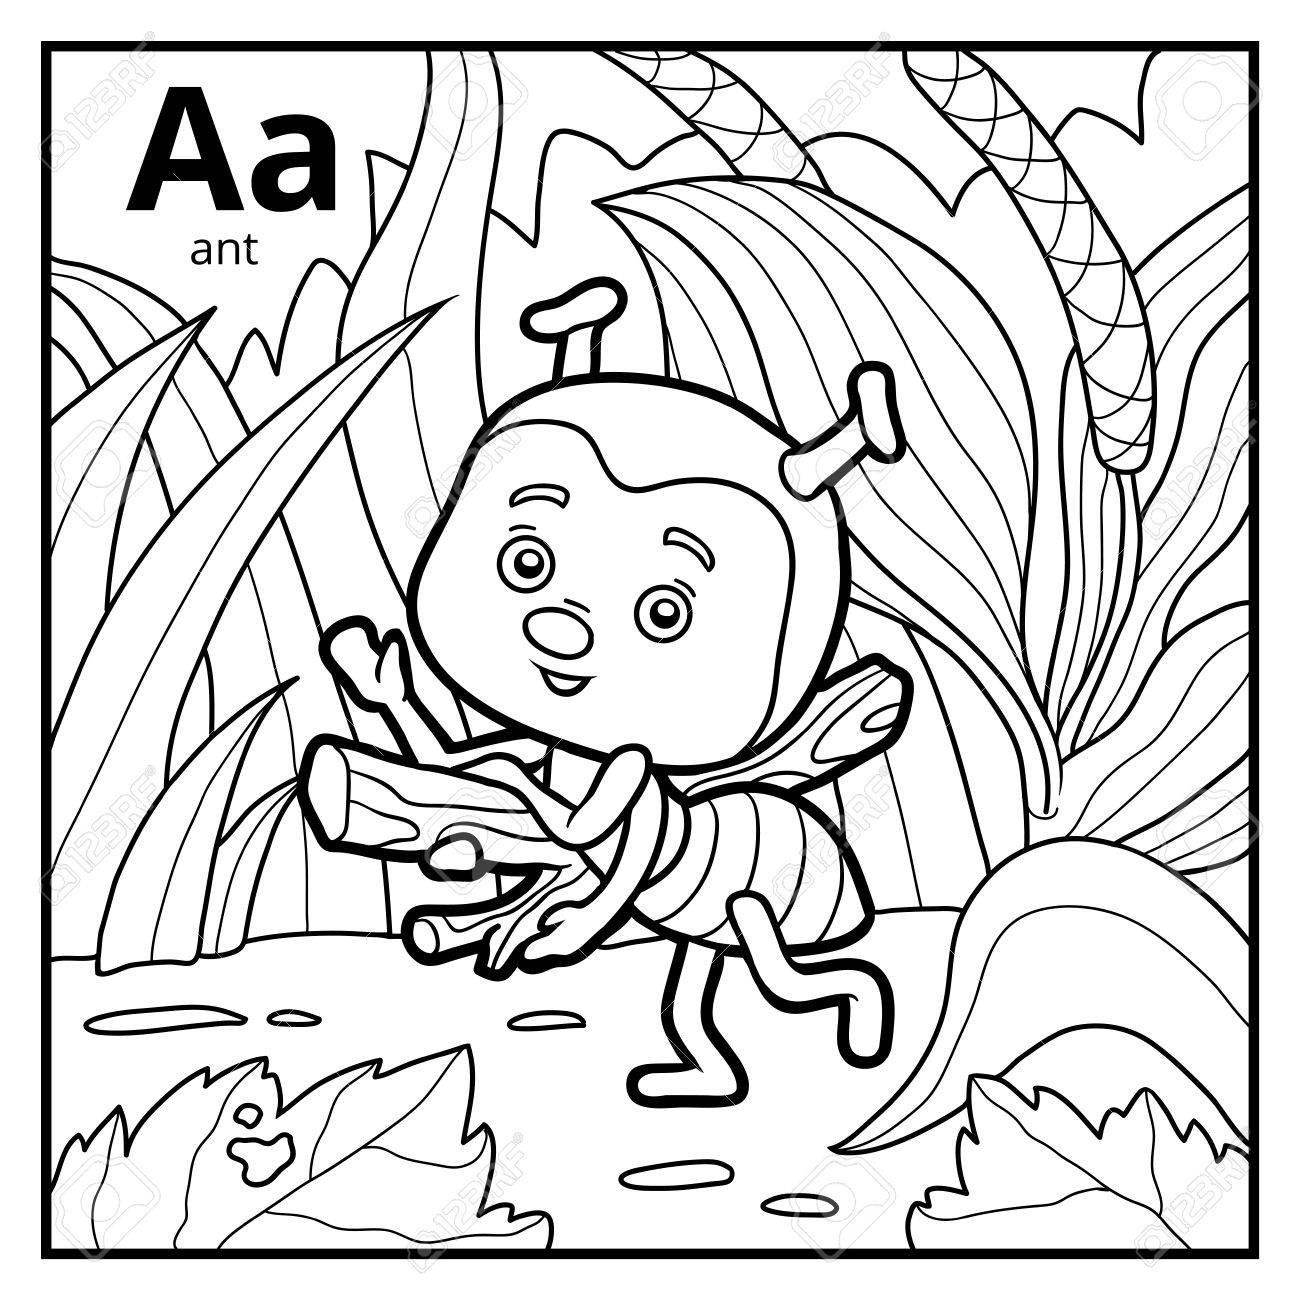 Coloring Book For Children, Colorless Alphabet. Letter A, Ant ...